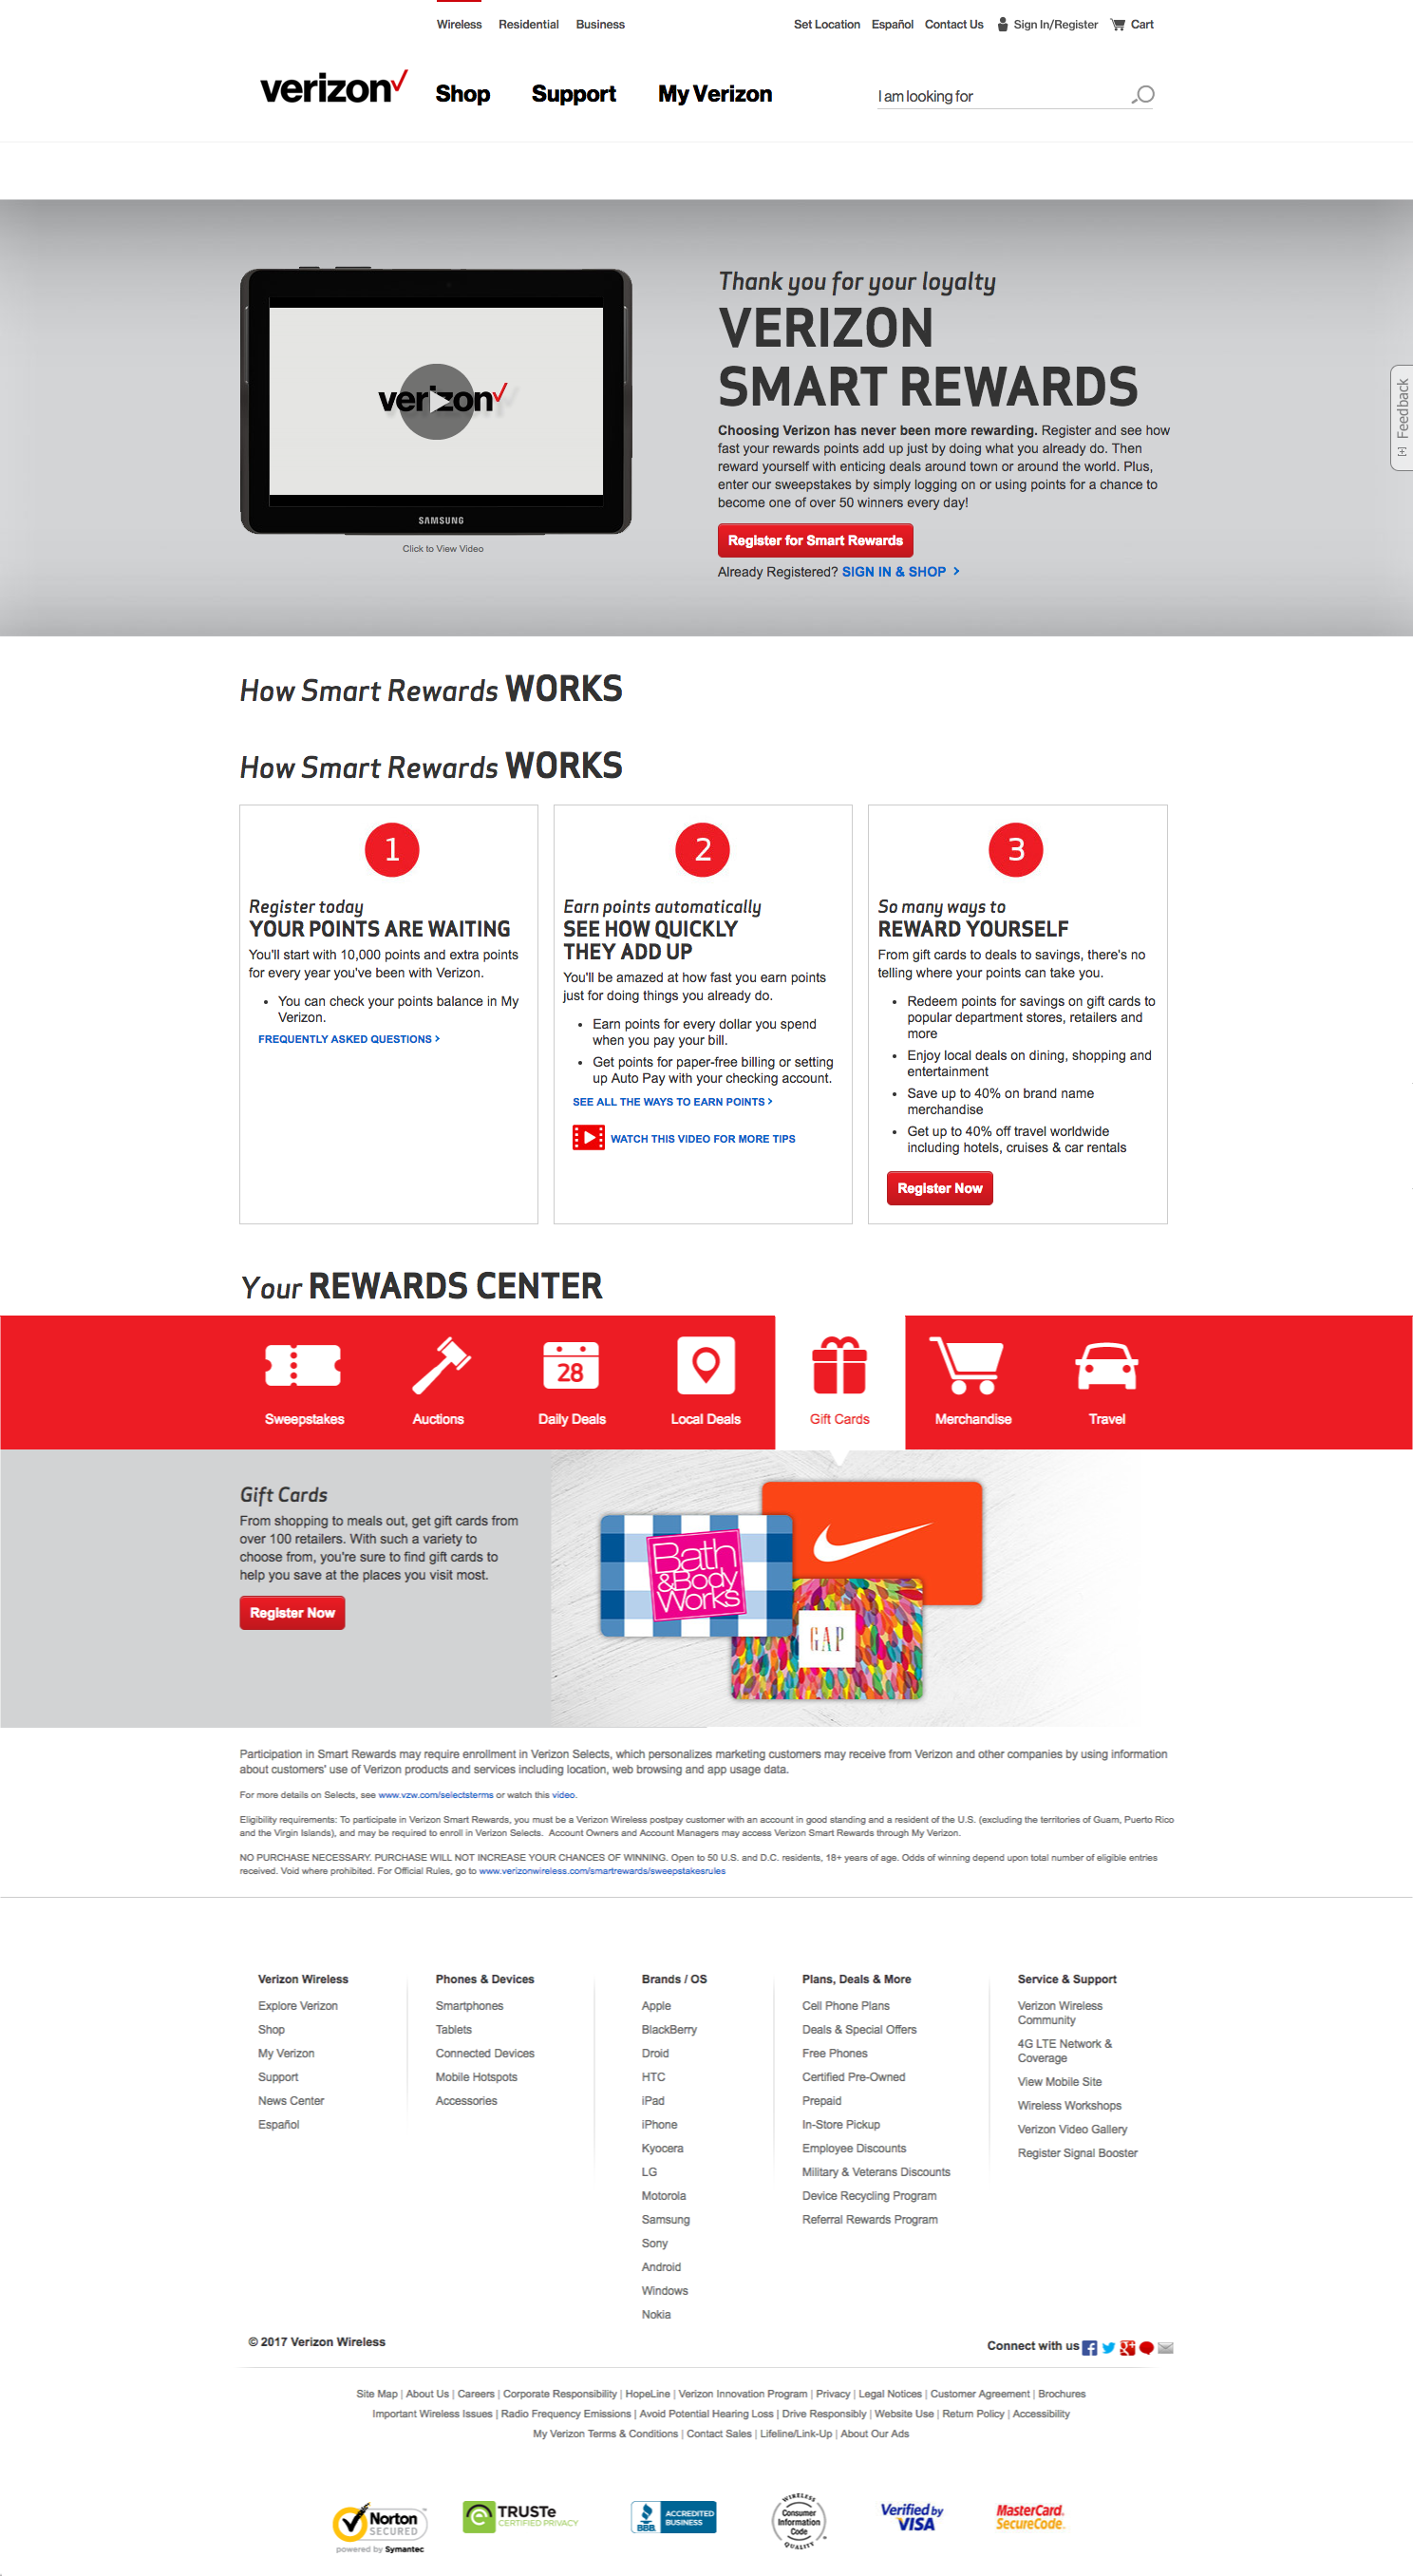 Verizon Keeps It Simple With A Bright Tab Navigation System And